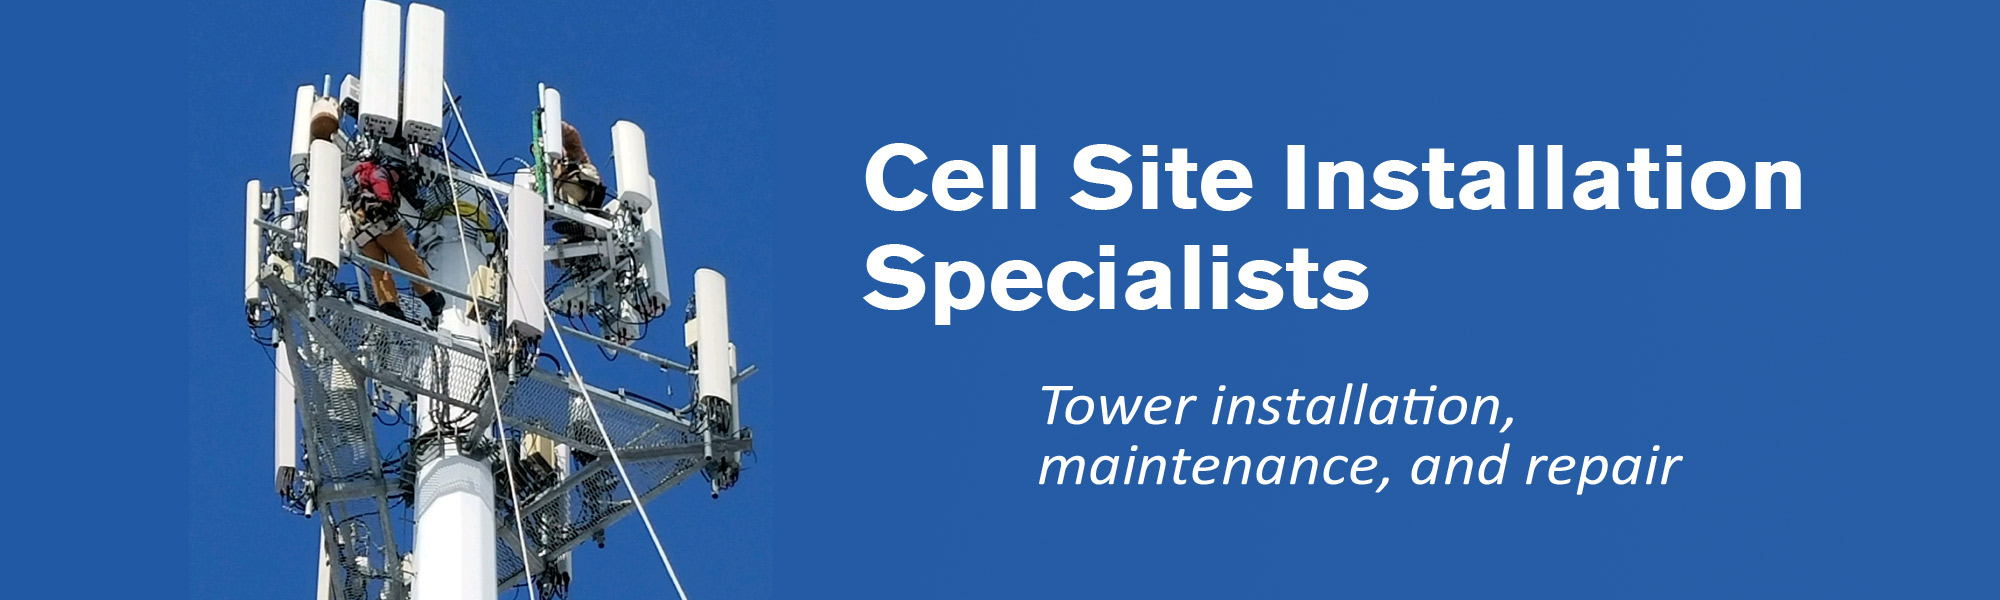 CEll Tower antenna and radio services